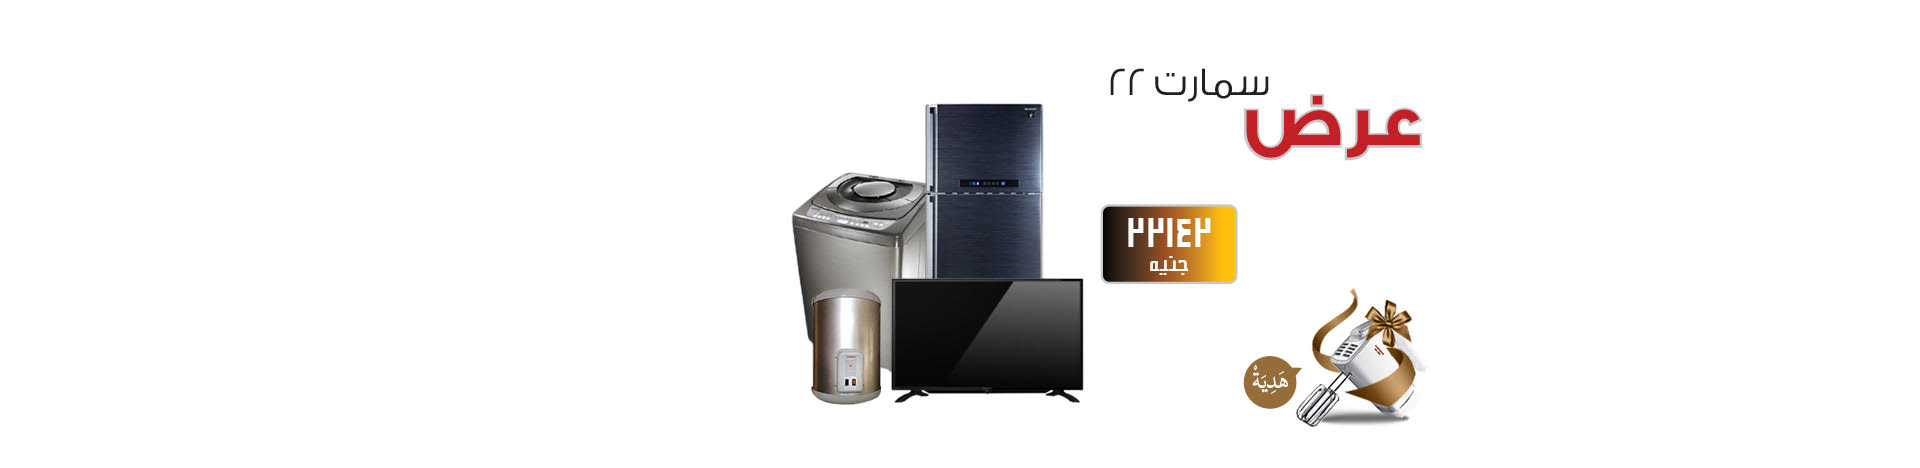 smart-bundle-22-offer